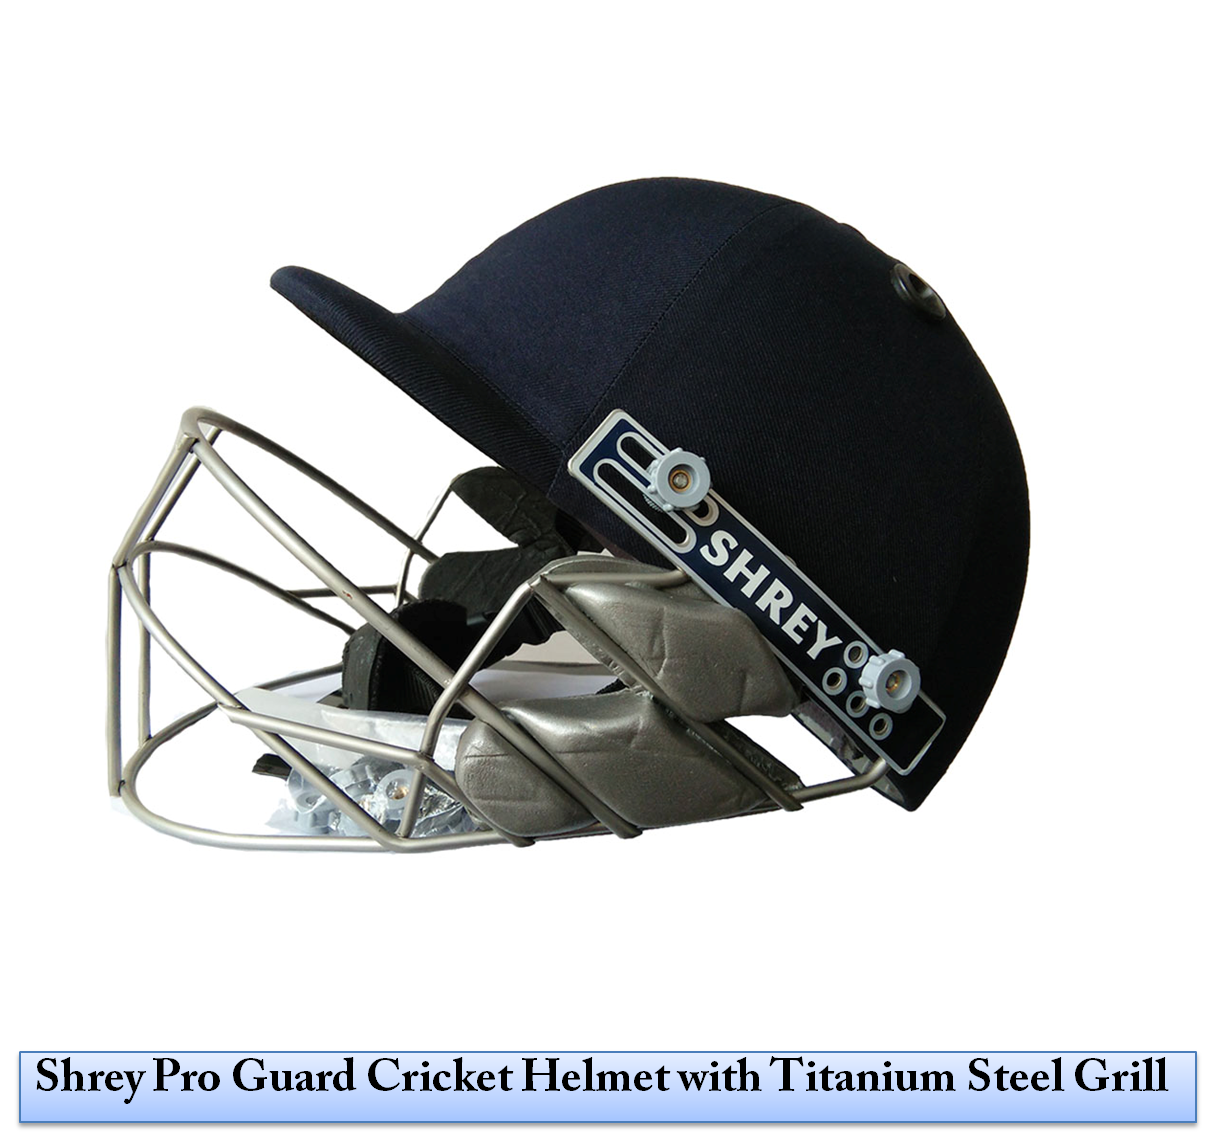 Shrey_Pro_Guard_Cricket_Helmet_Blog_Image